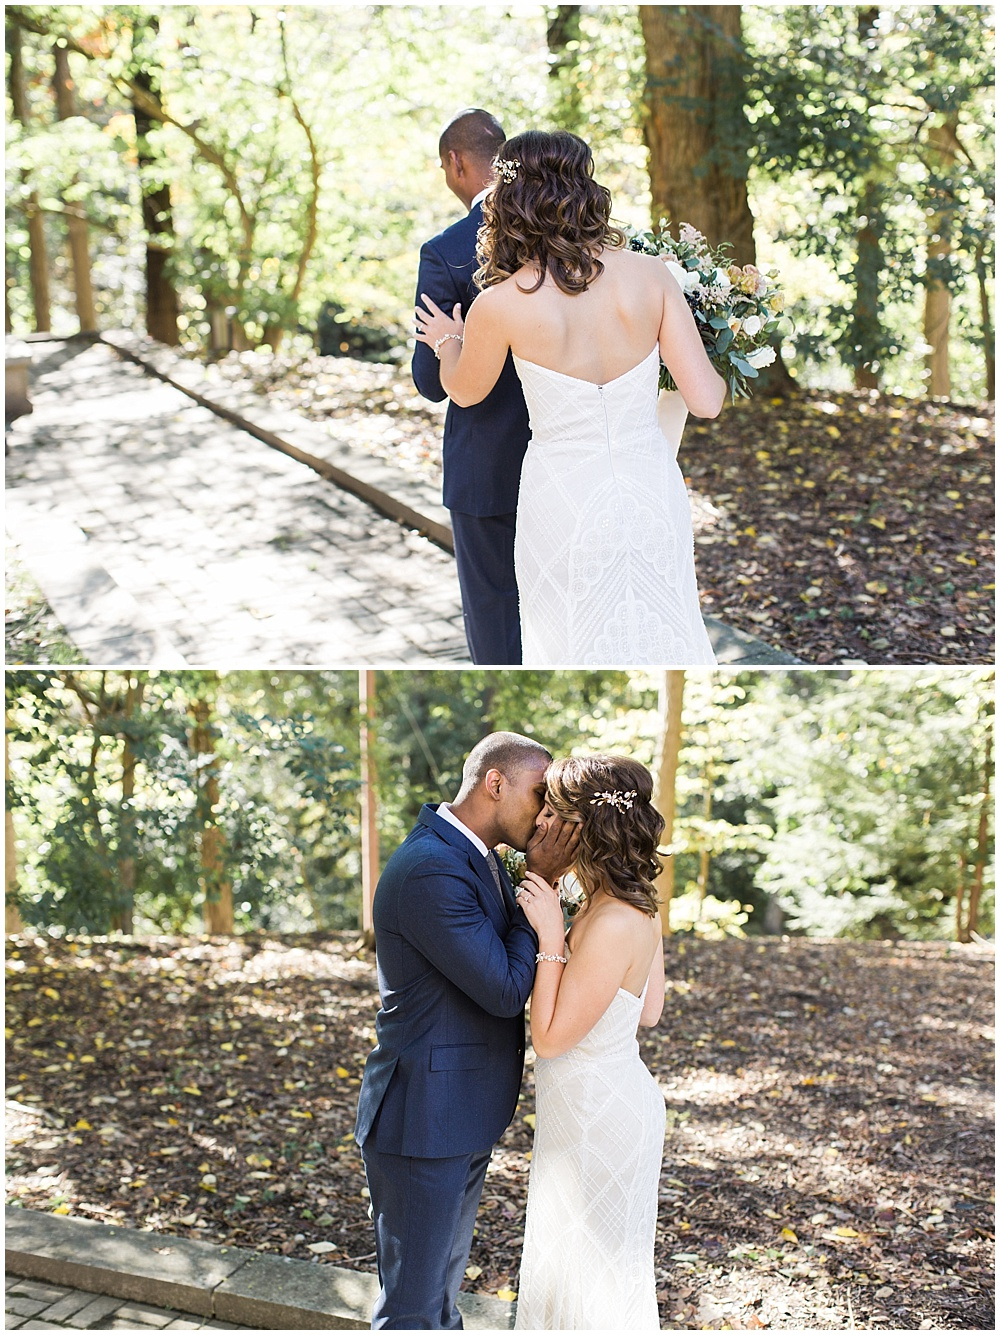 First look |Navy and Gold Wedding at Laurel Hall with Ivan & Louise Photography + Jessica Dum Wedding Coordination